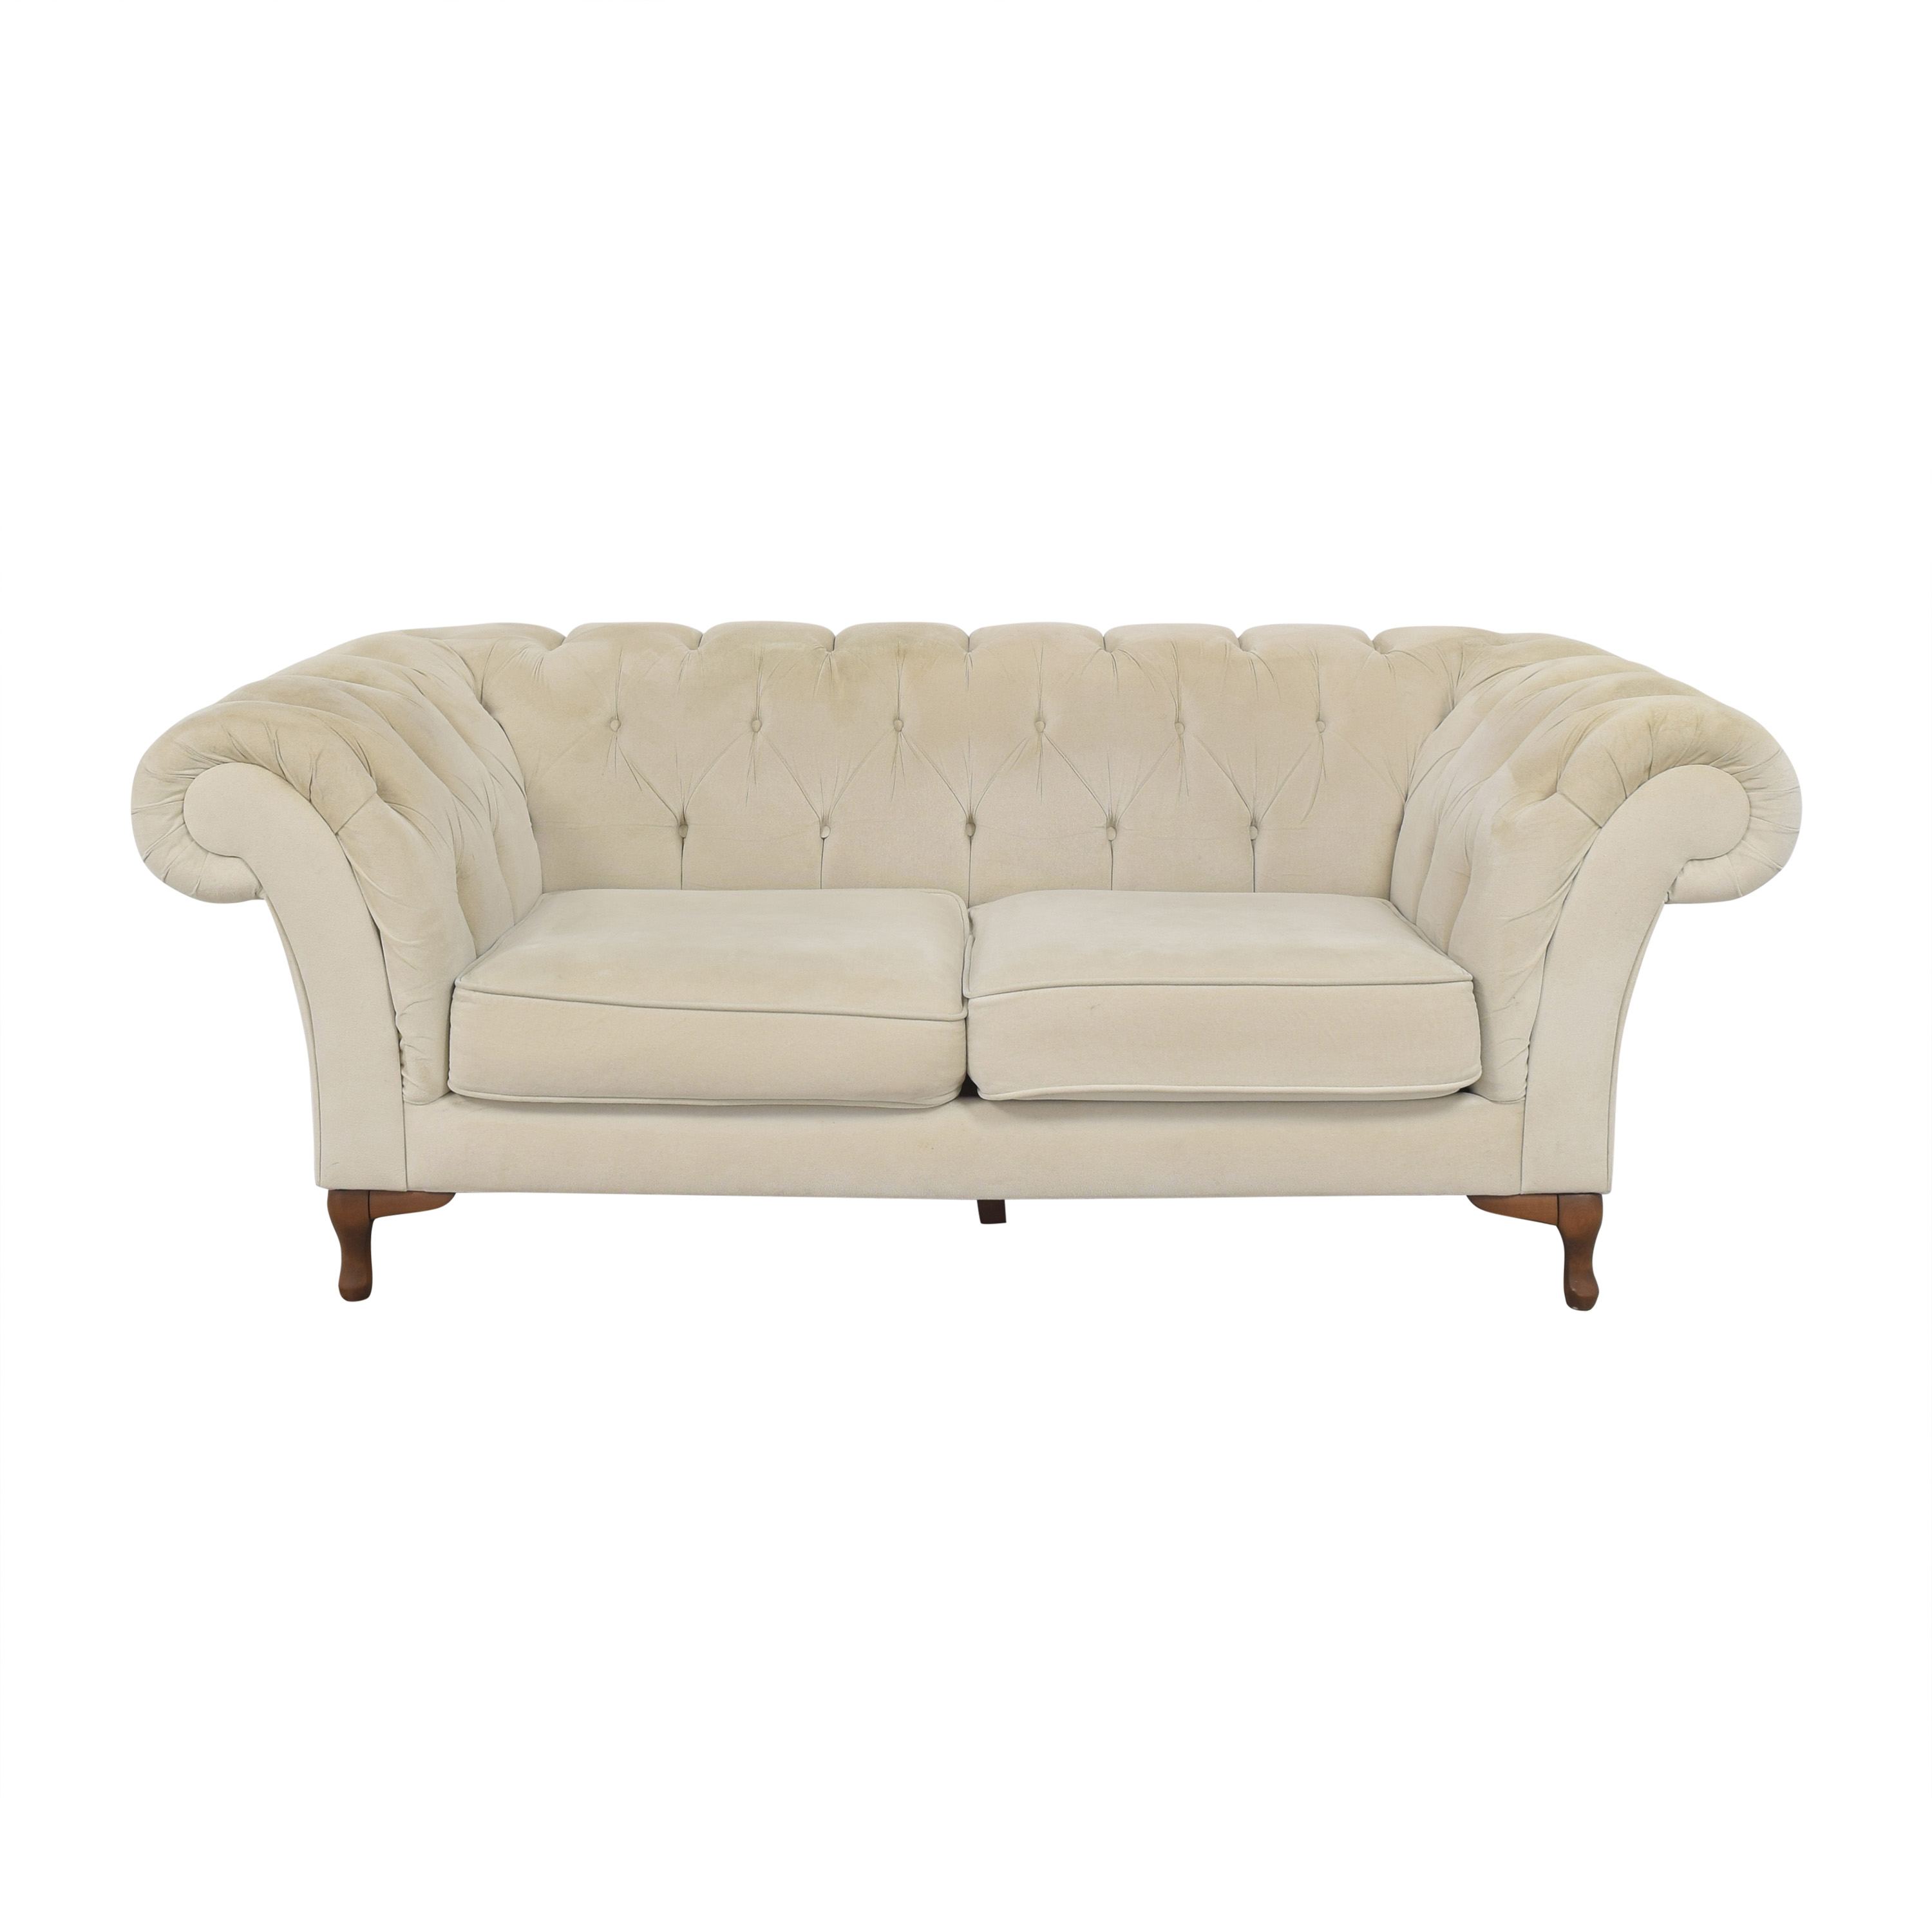 Wayfair Rosdorf Park Mckay Rolled Arm Sofa sale